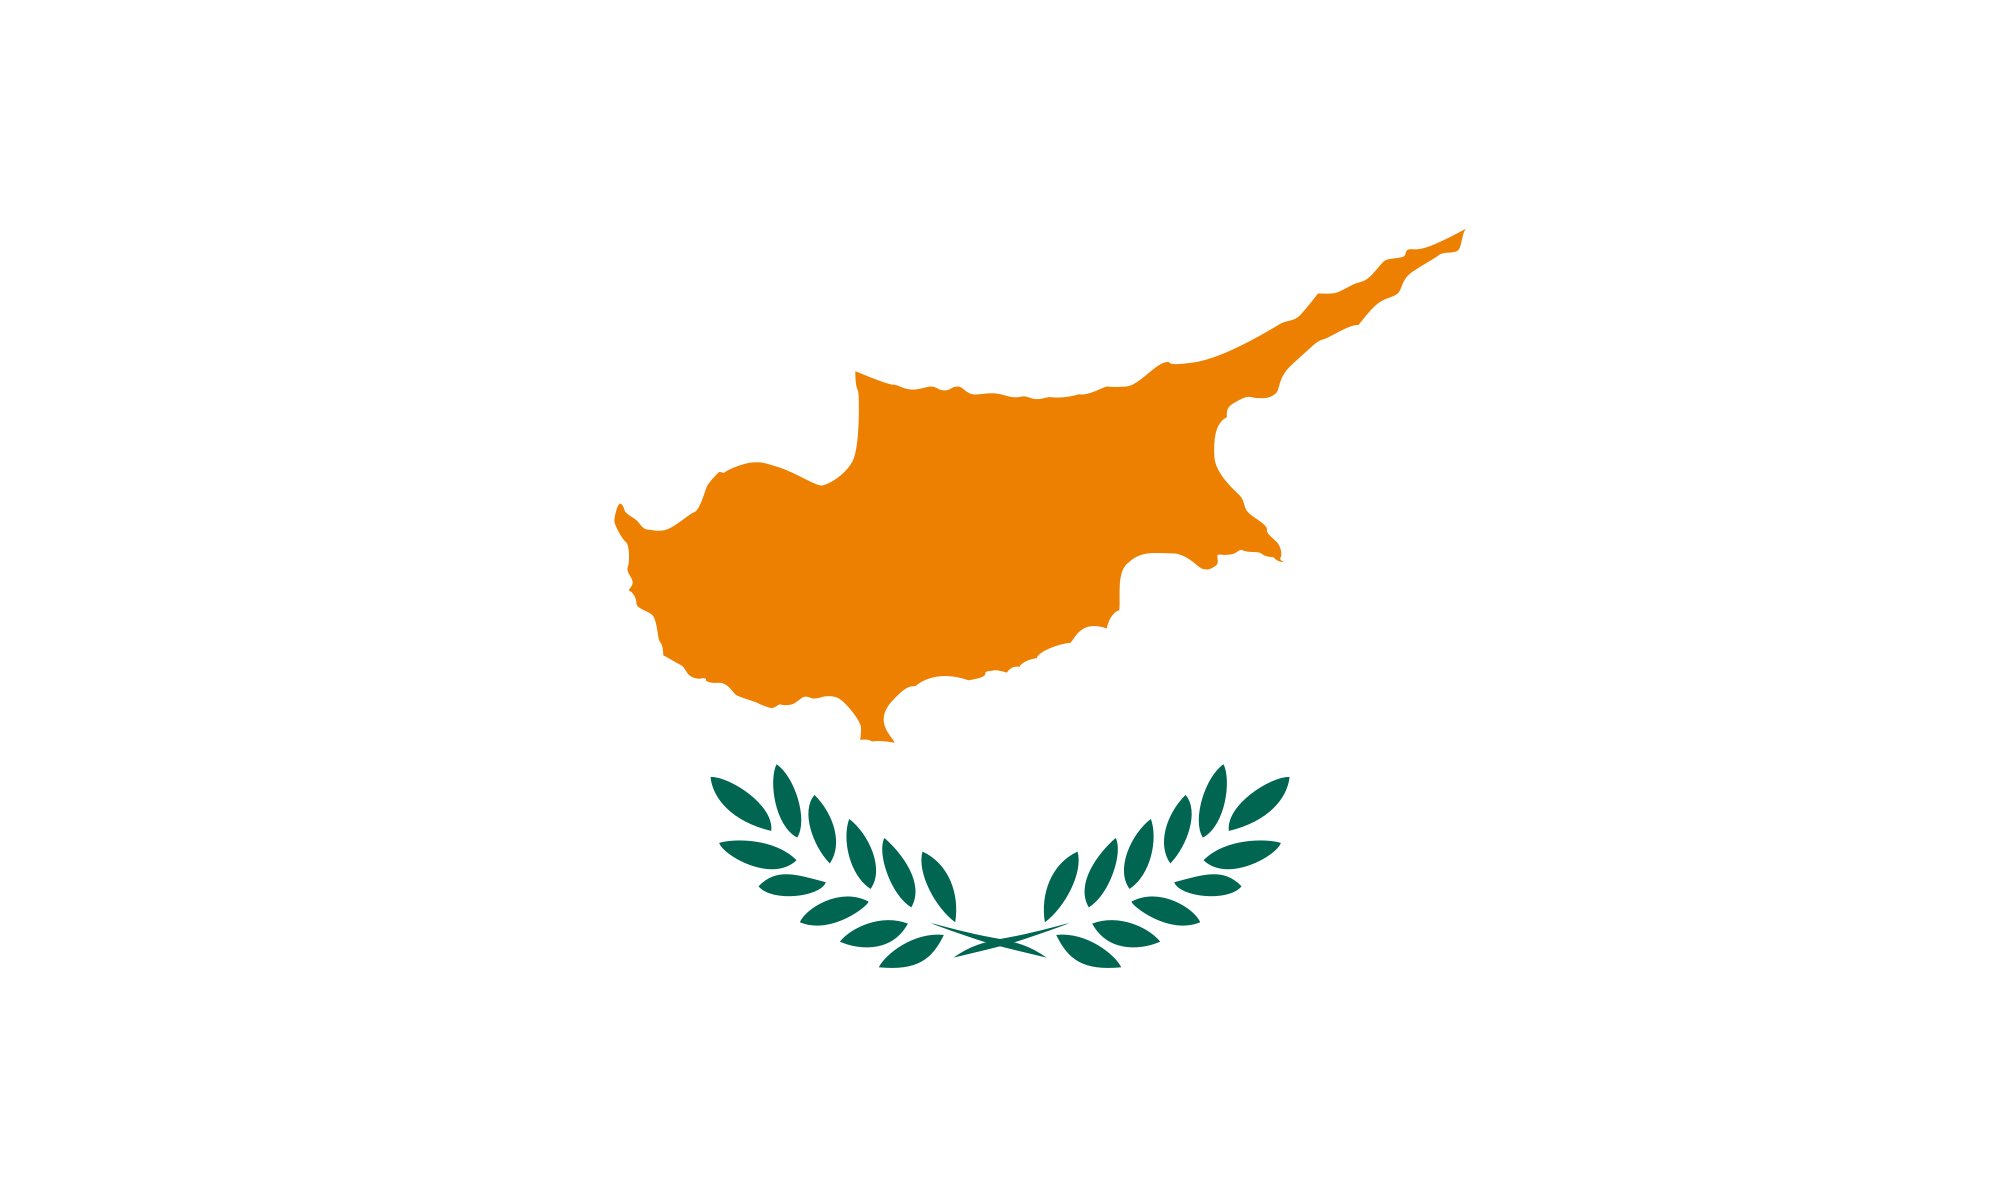 religion and the nation of cyprus essay Some took the view that because civil religion in the durkheimian perspective is an objective social fact, then every nation should have some form of civil religion therefore any particular nation's civil religion should be able to be detailed by an observant social scientist.